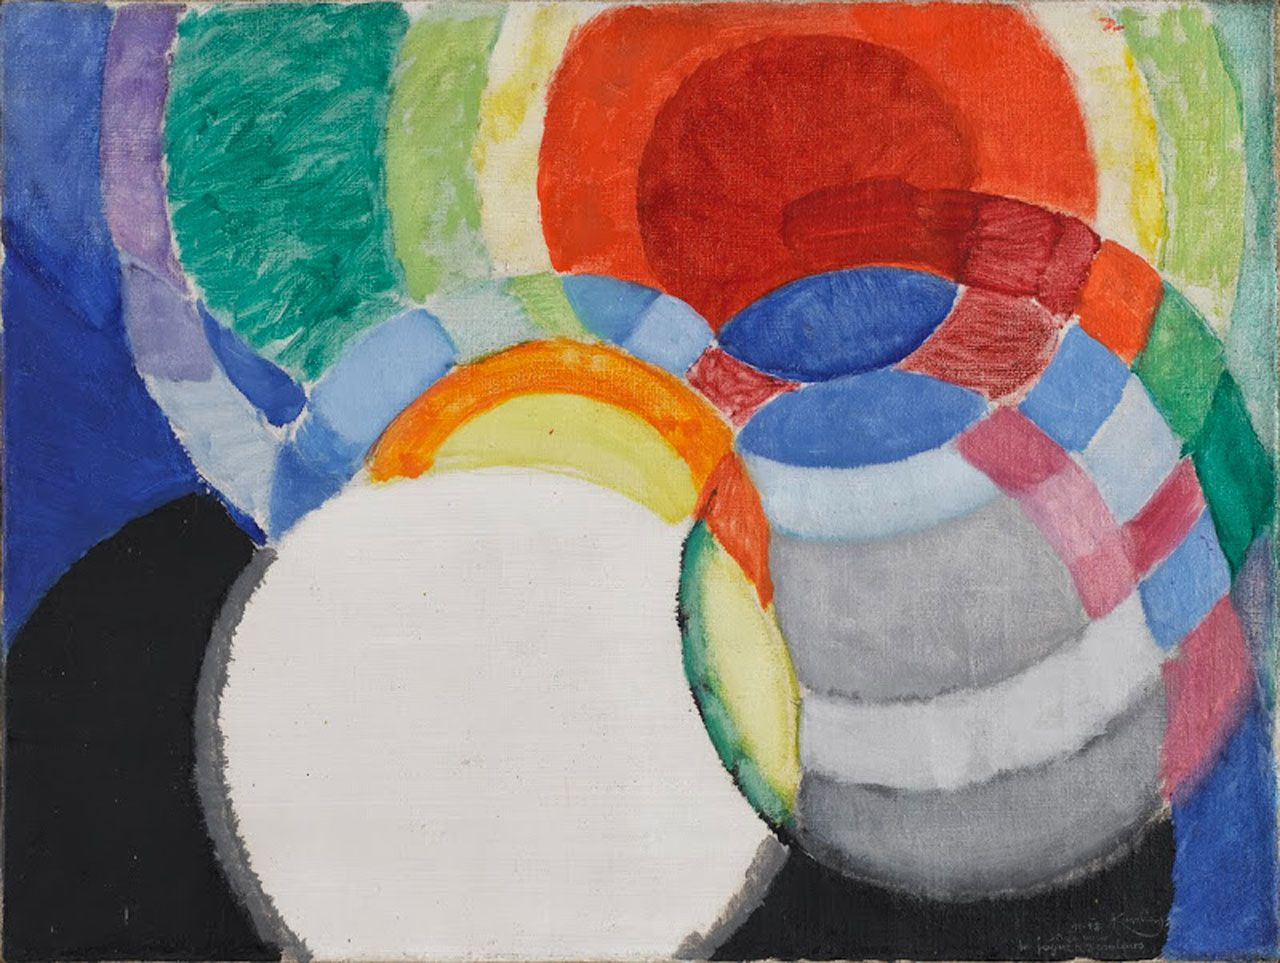 Abstraction, Frantisek Kupka-Disques,1911-1912